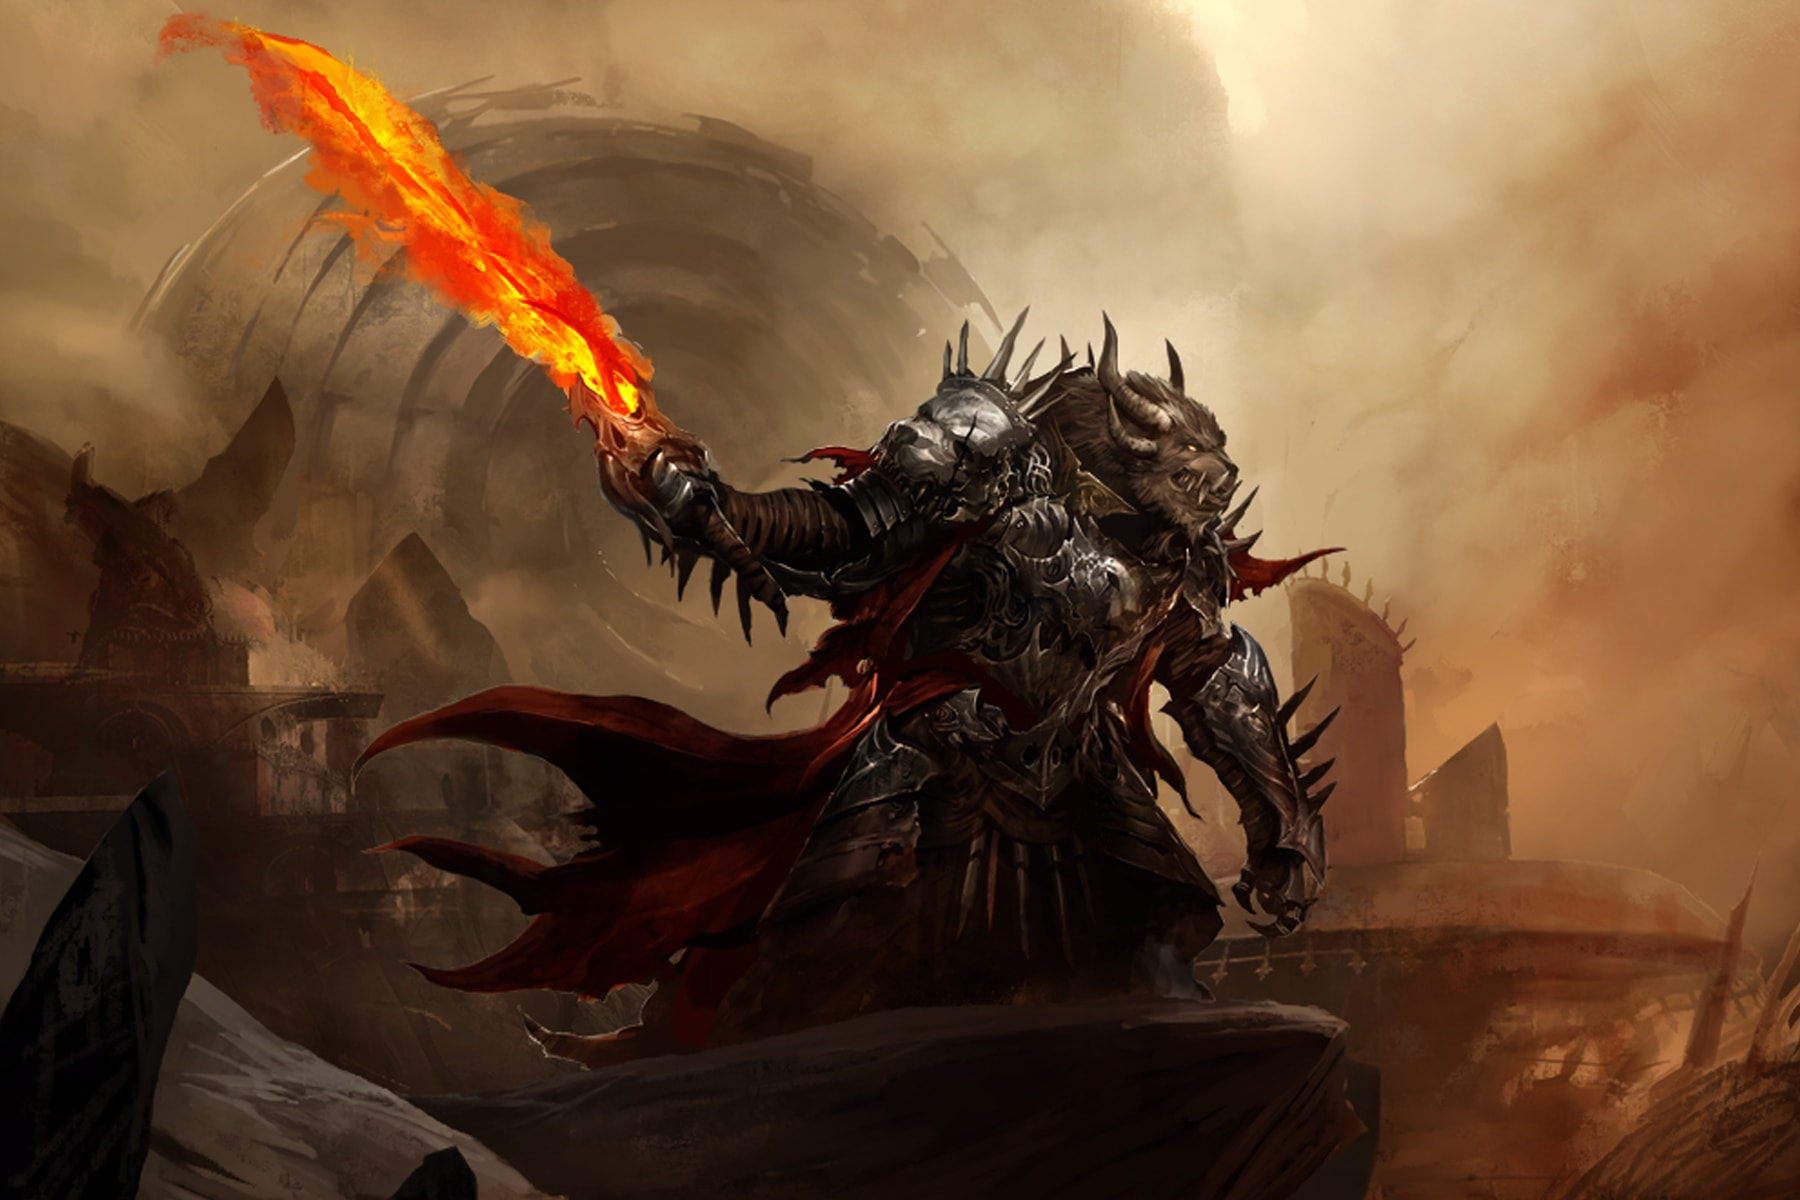 Illustration of Guild Wars 2 character Rytlock brimstone, a huge creature wielding a fiery sword amid smoking ruins